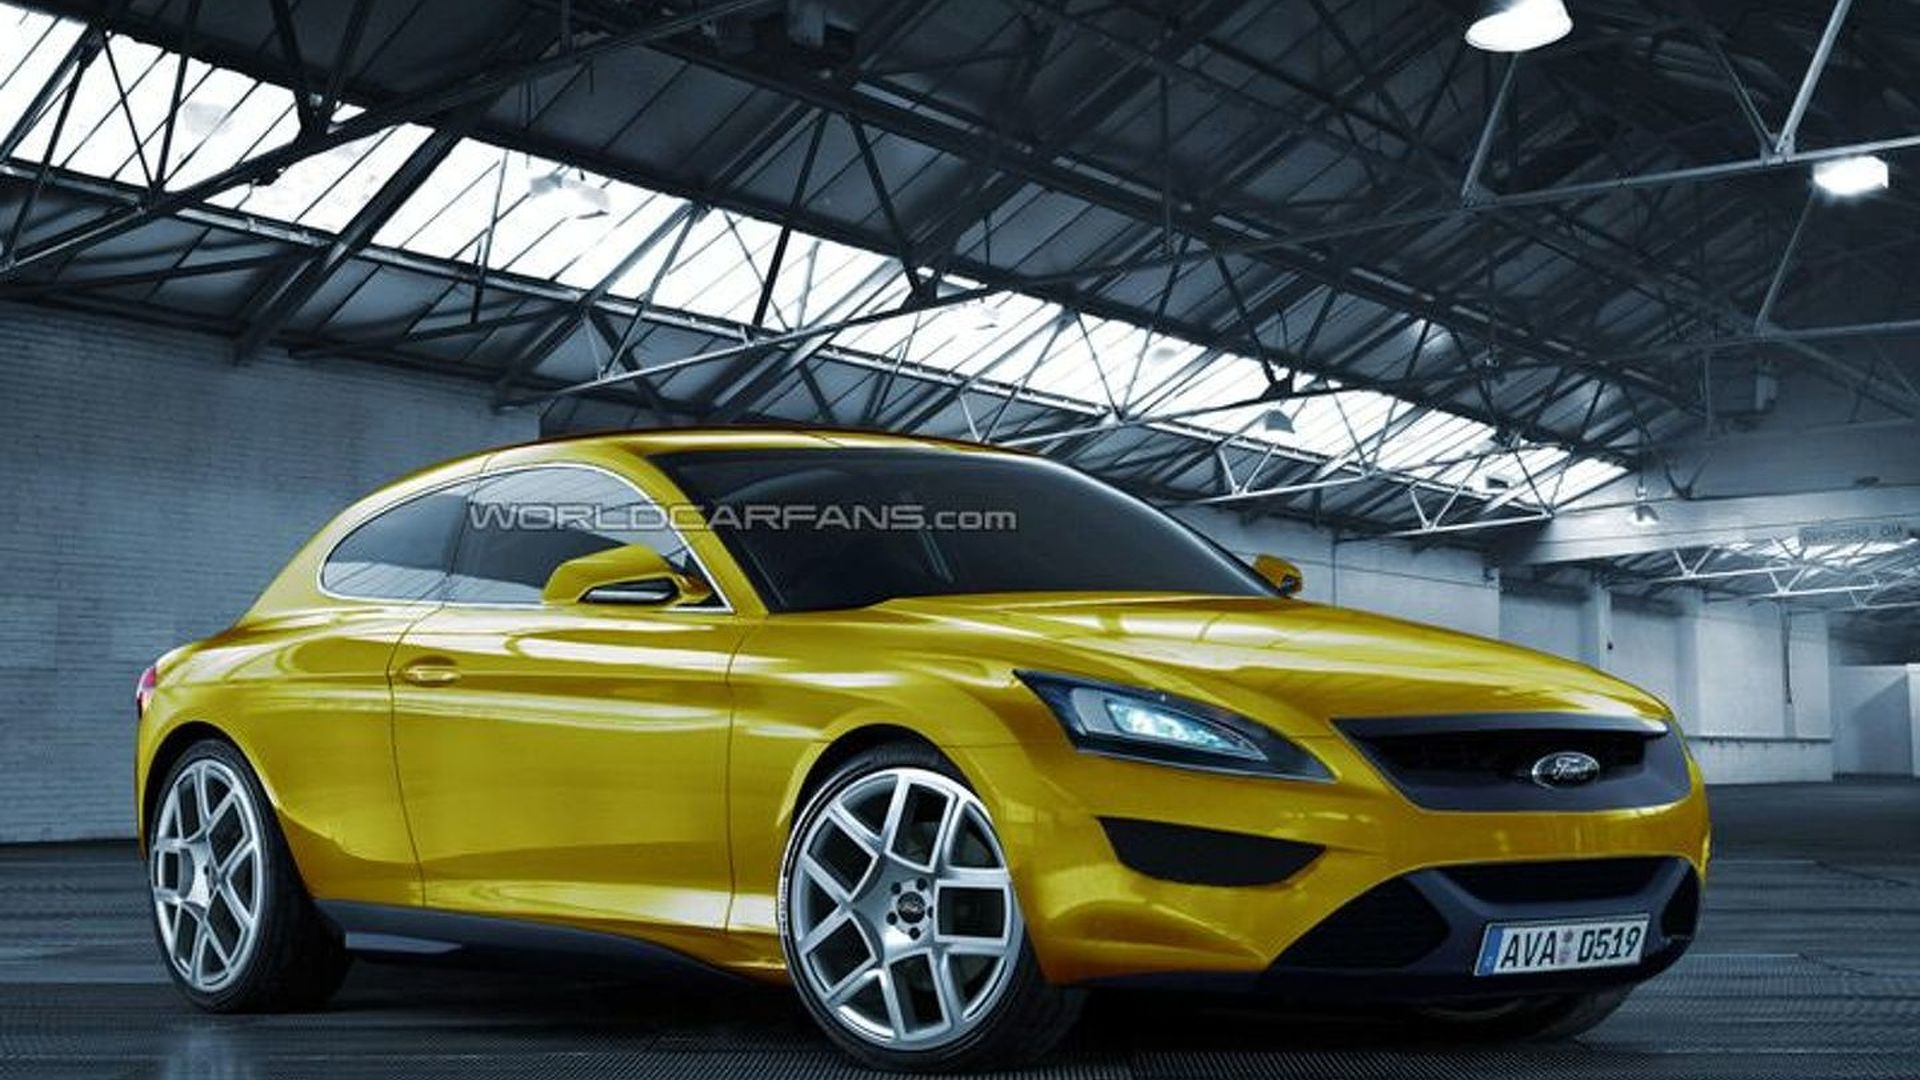 Rendered Speculation: Return of the Ford Capri